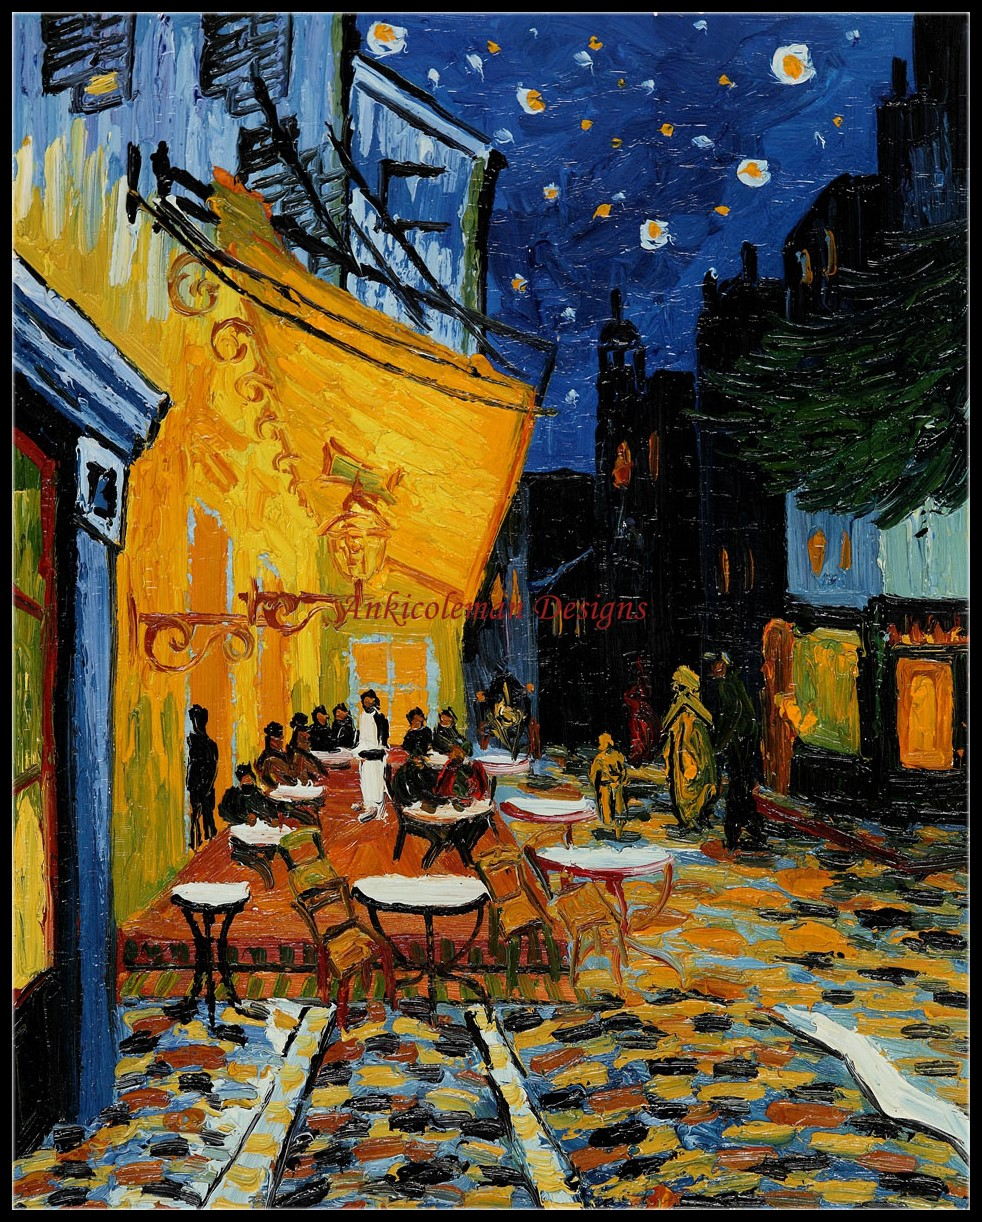 Cafe Terrace at Night - Kits de punto de cruz contado - Costura hecha - Artes, artesanía y costura